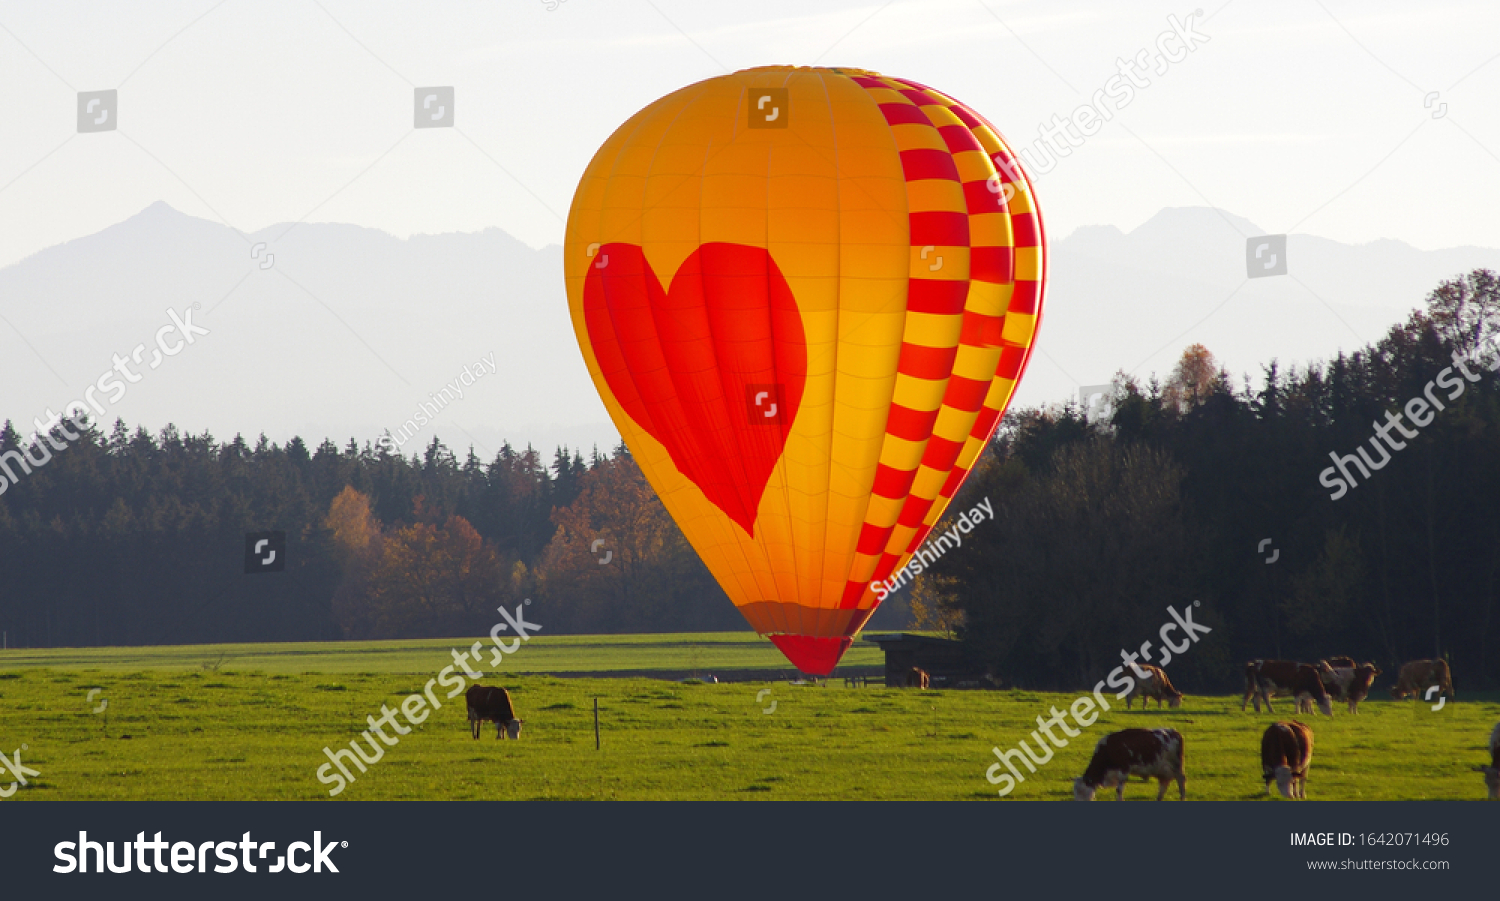 stock-photo-yellow-and-red-hot-air-ballo